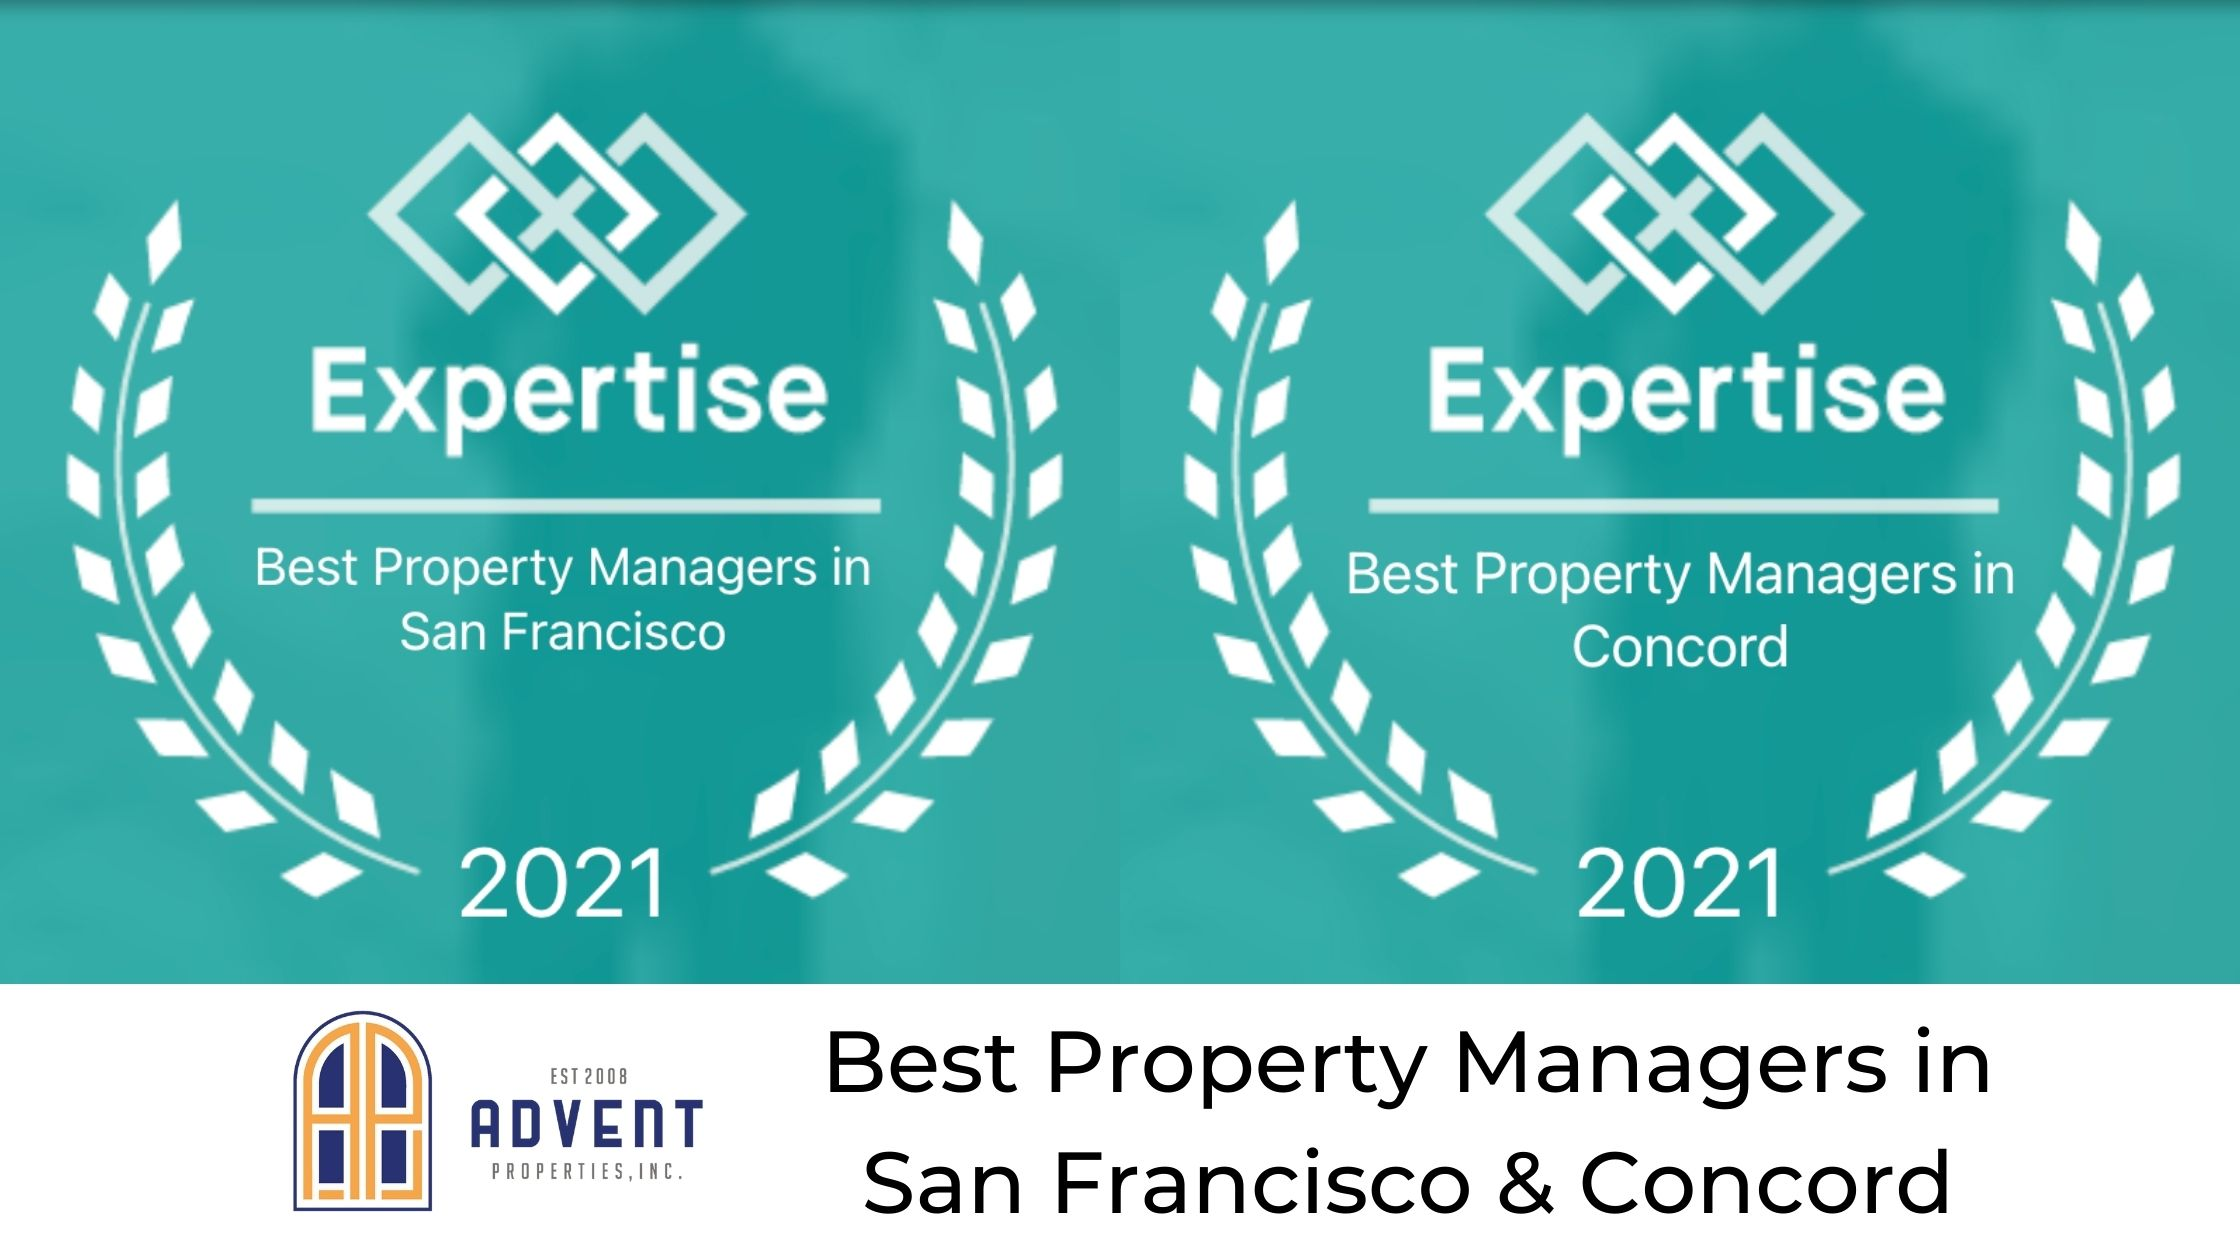 Expertise.com's 2021 Best Property Managers in San Francisco & Concord